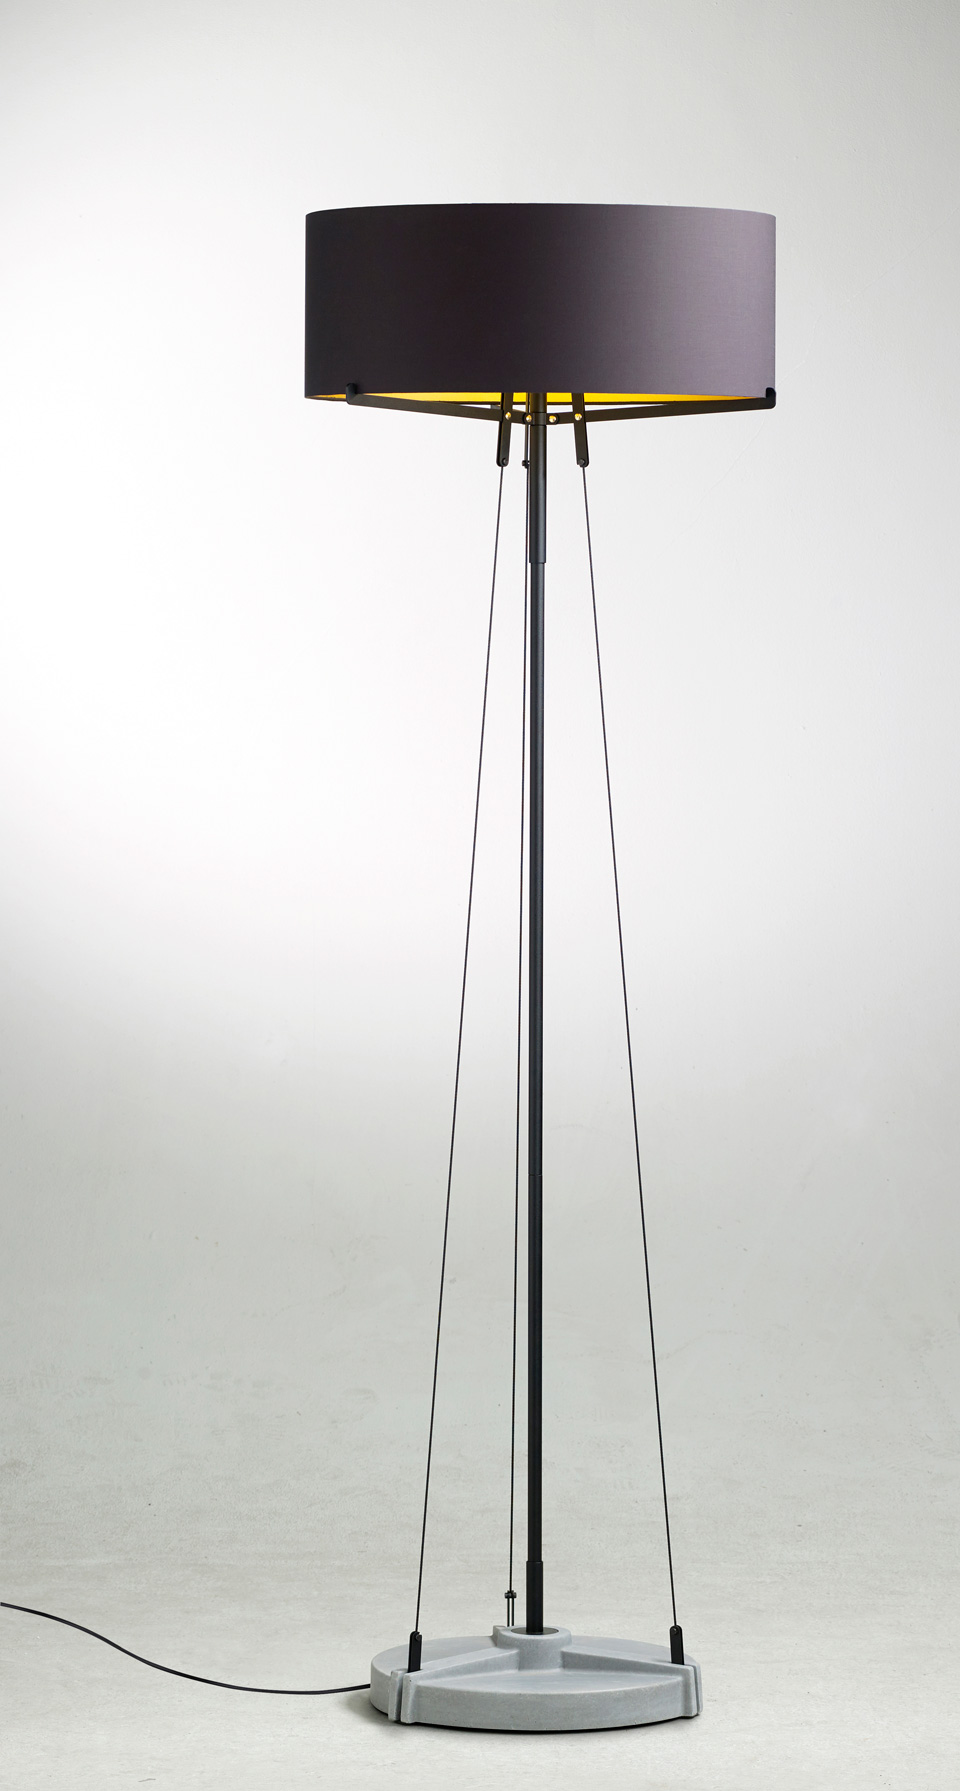 Matt Black Floor Lamp Nearly 2m Tall Stayed With 3 Guys Ancd On A Steel Base